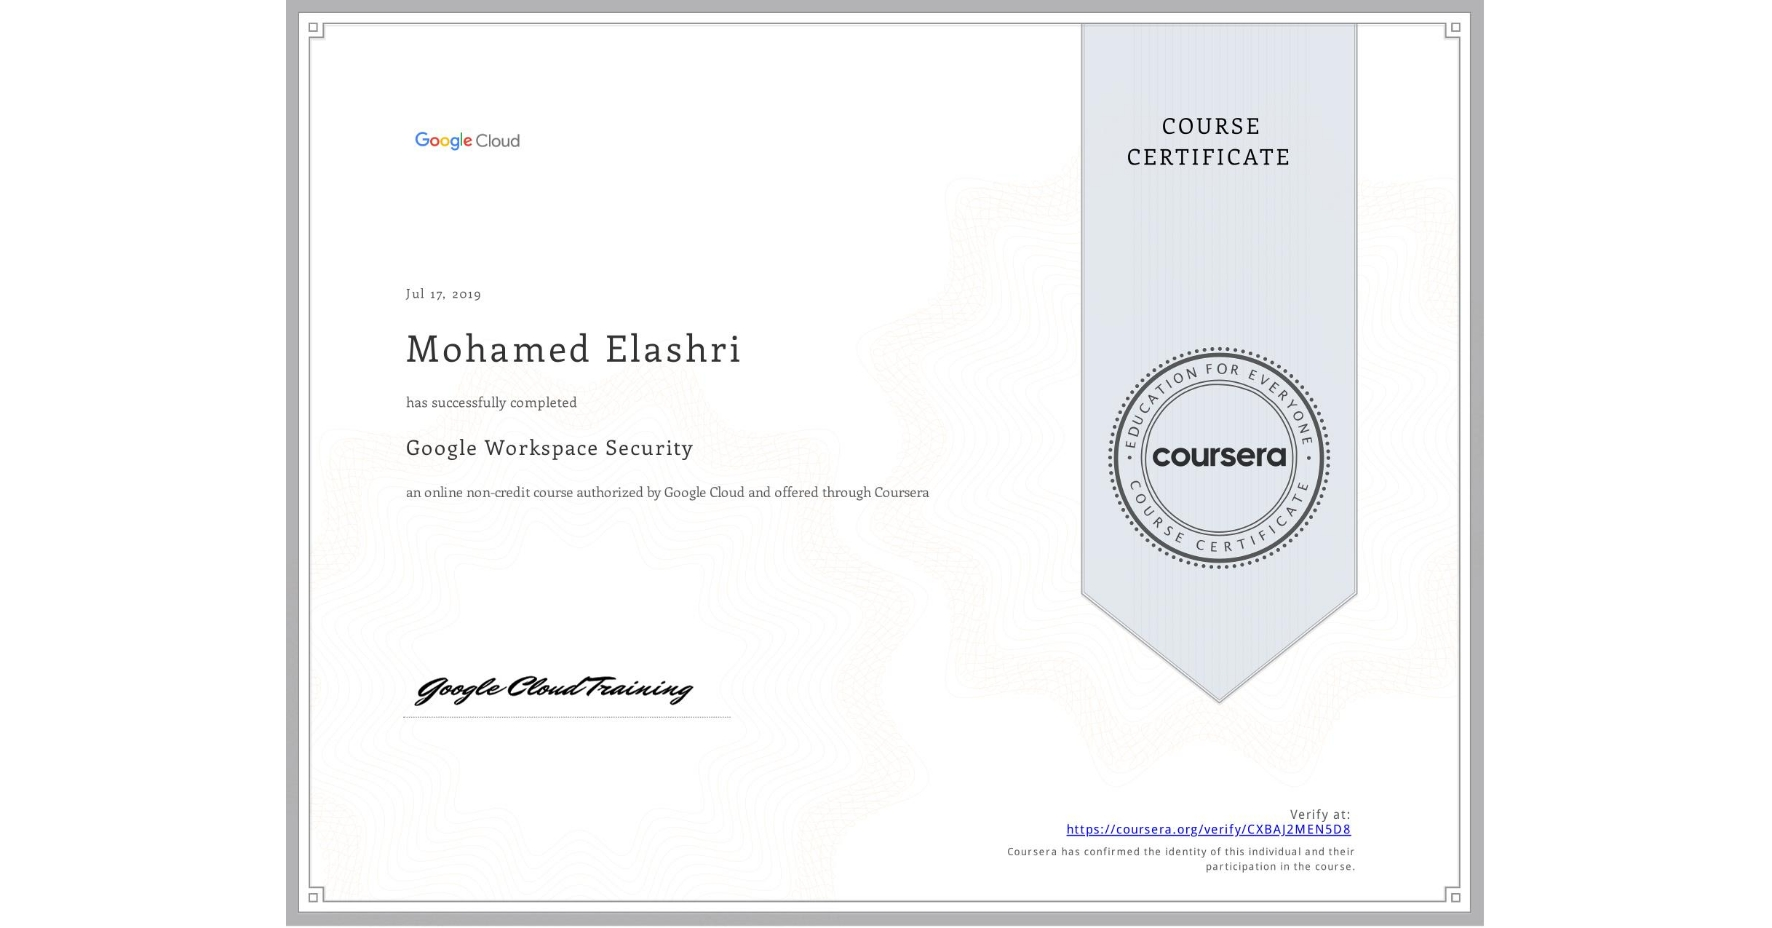 View certificate for Mohamed Elashri, Google Workspace Security, an online non-credit course authorized by Google Cloud and offered through Coursera